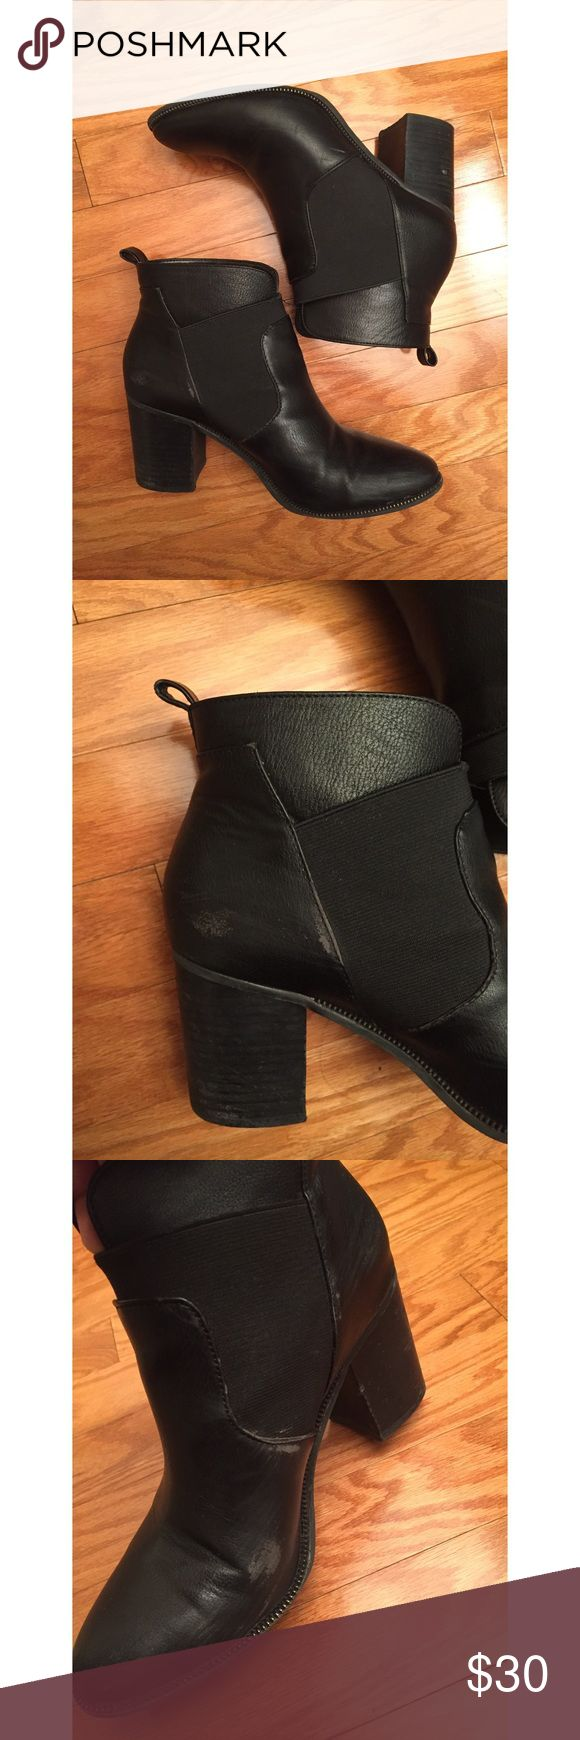 • ck fashion Worn gently with a lot of love left. Goes so well with everything. The go-to bootie. Very comfortable! Minor scuffs on the inside sides of the shoes. pictures shown. $140 Calvin Klein Shoes Ankle Boots & Booties